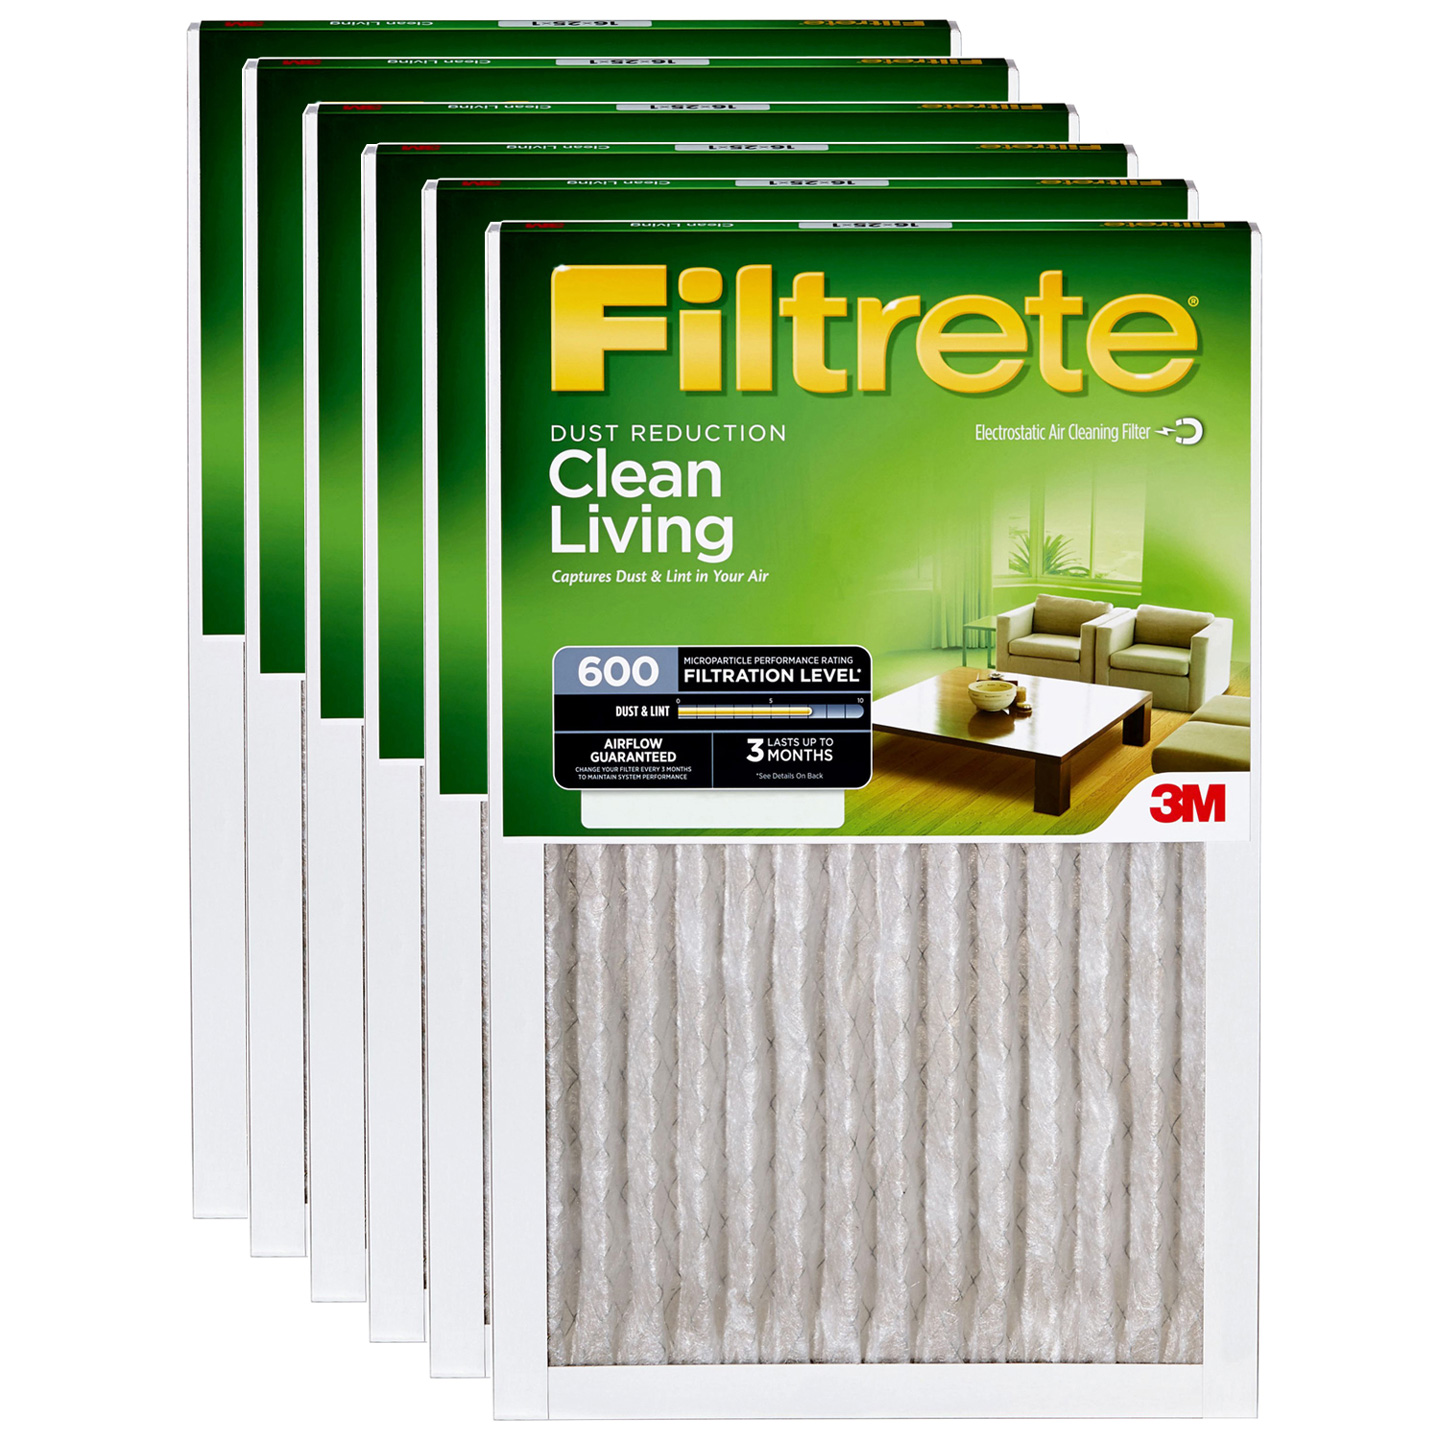 Filtrete 600 Dust Reduction Clean Living Filter - 14x24x1 (6-Pack) FILTRETE_DUST_14x24x1_6_PACK